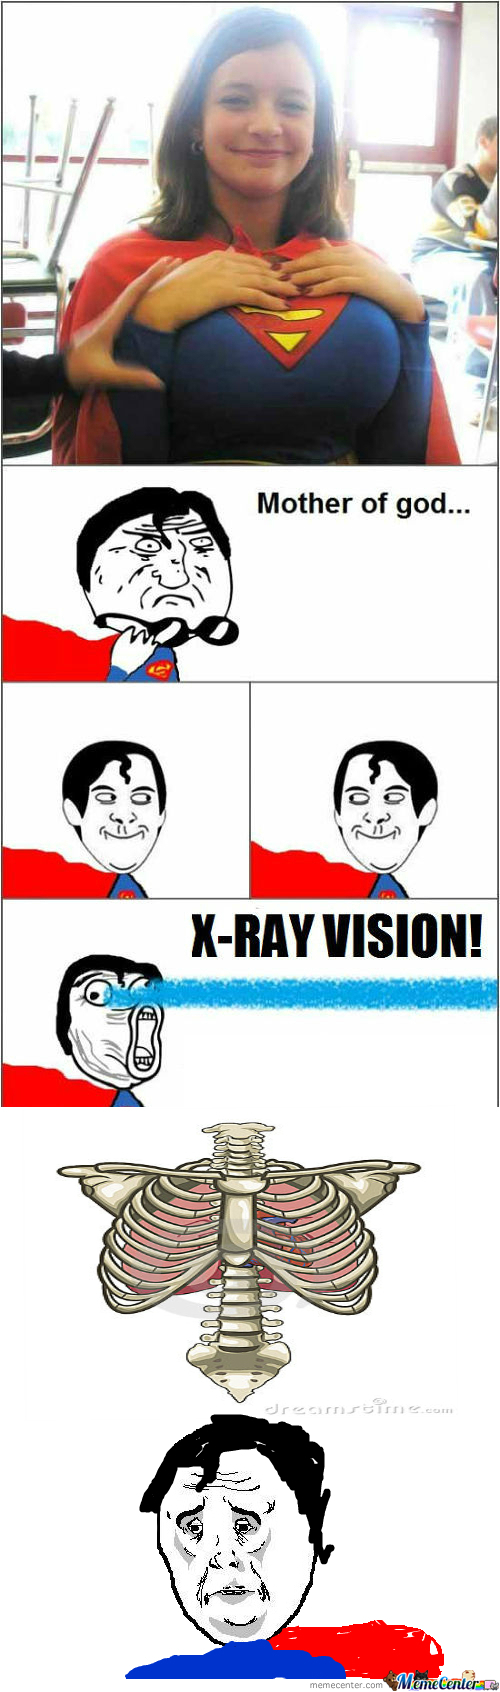 [RMX] Super Loves His X-Ray Vision